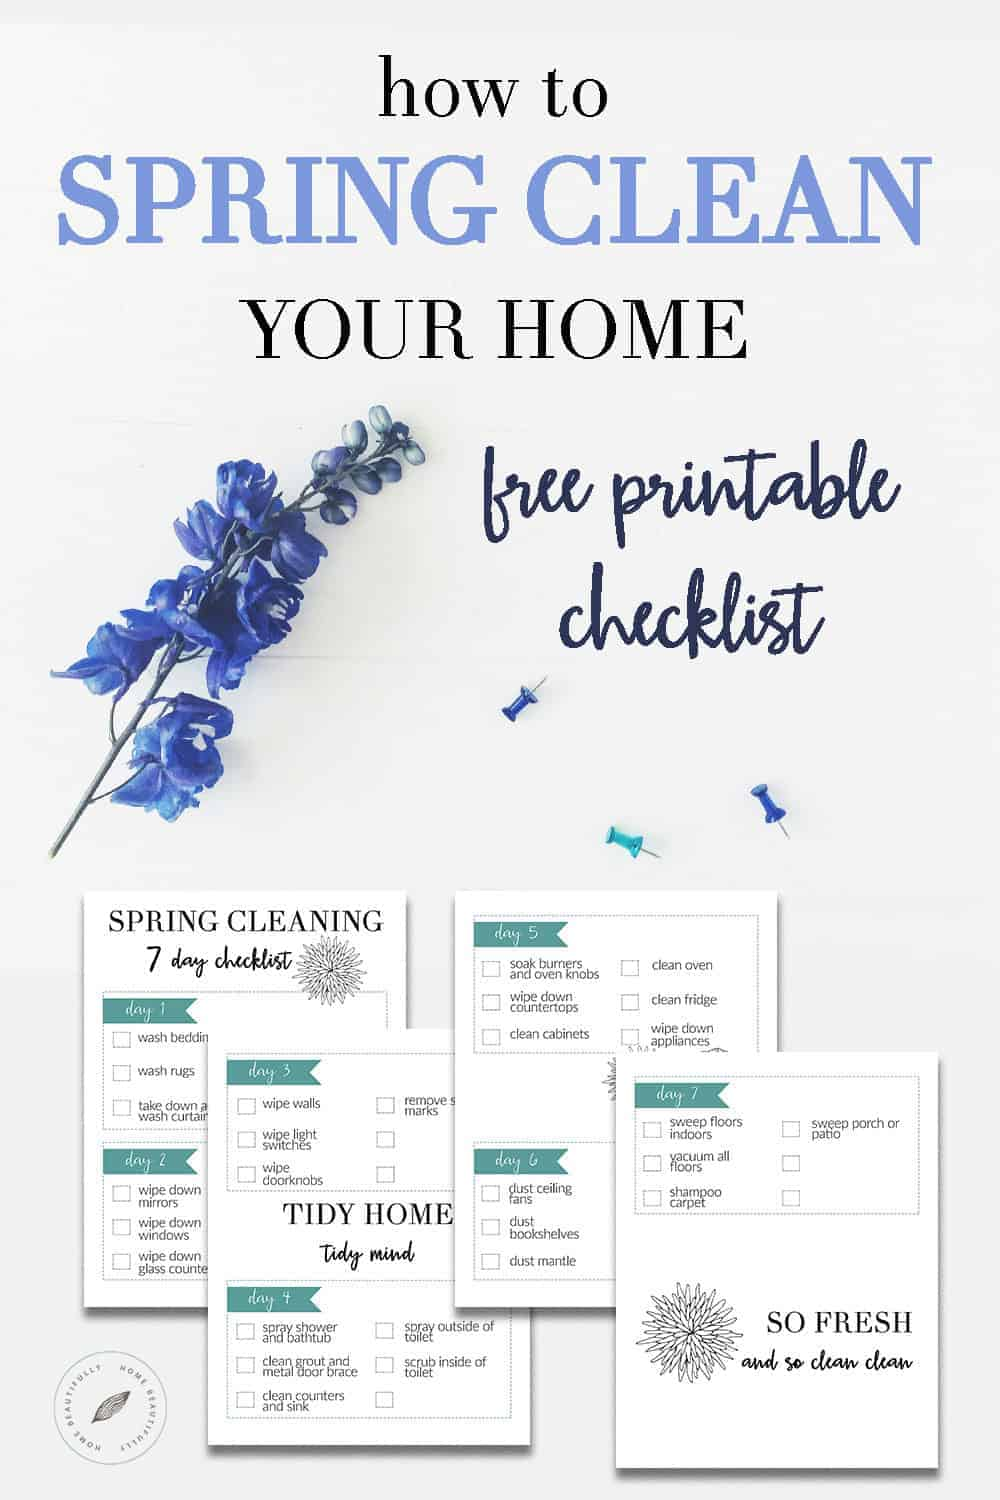 Want to know how to spring clean your home? This printable checklist will walk you through spring cleaning in only 7 days!